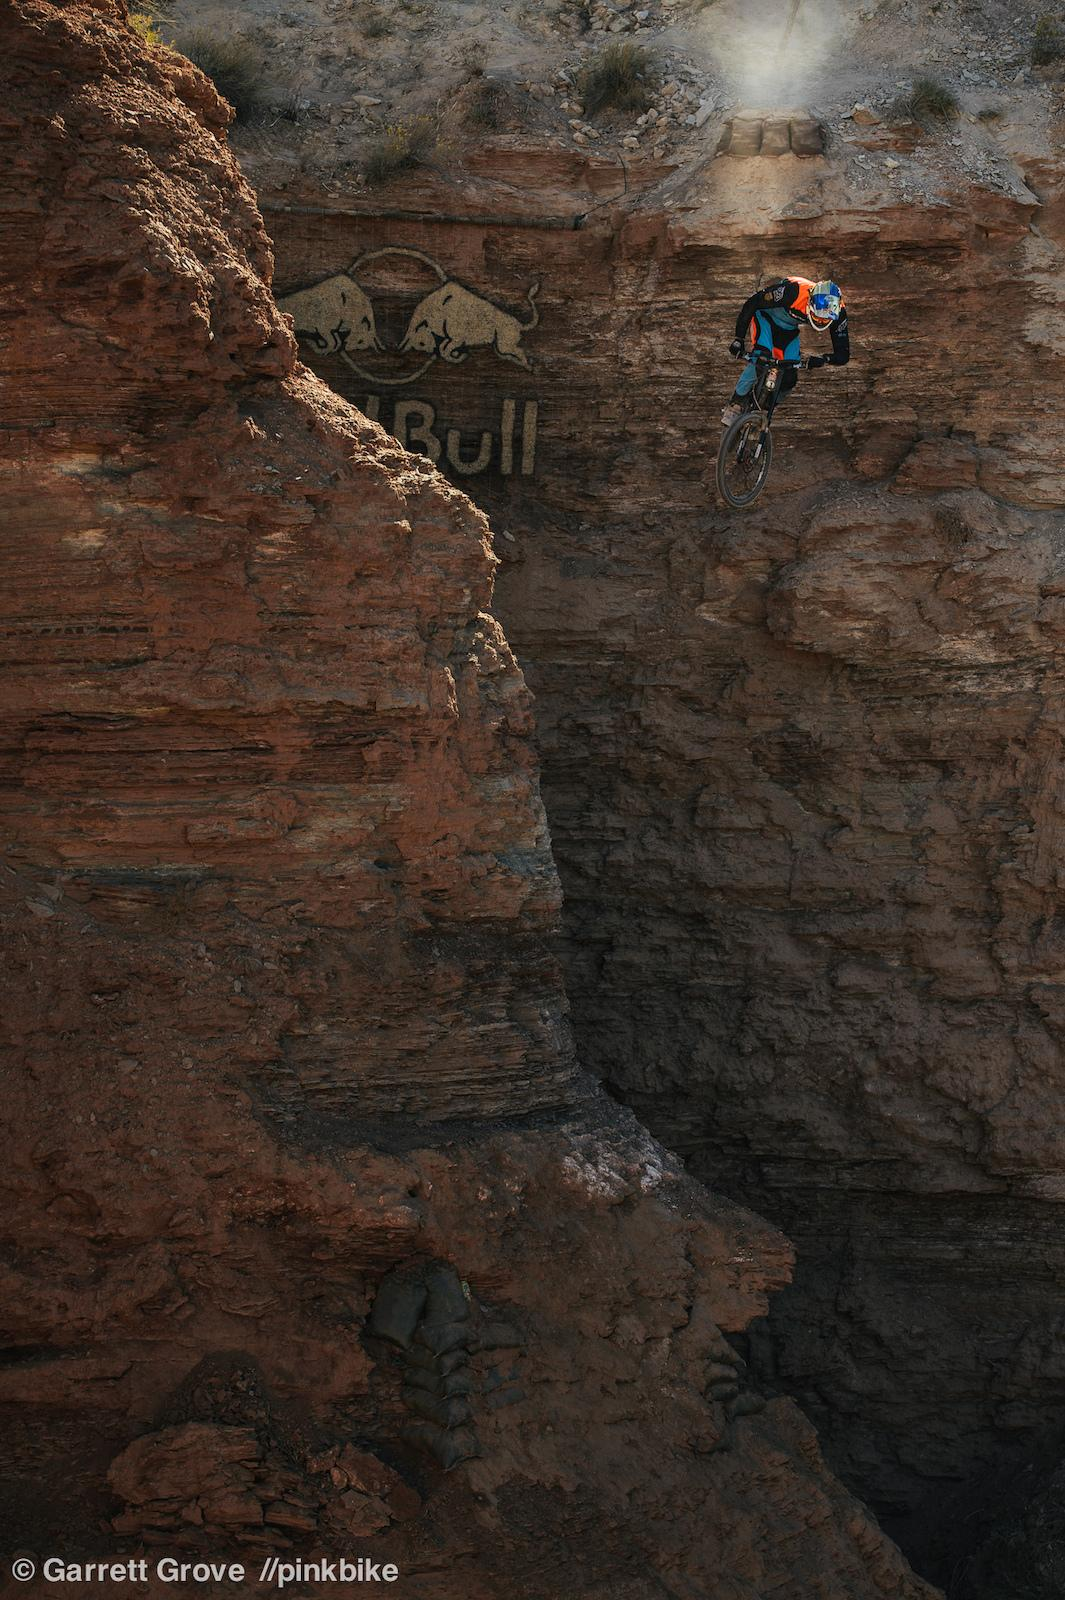 Brandon Semenuk at Redbull Rampage in Virgin, Utah, United States - photo by garrettgrove - Pinkbike